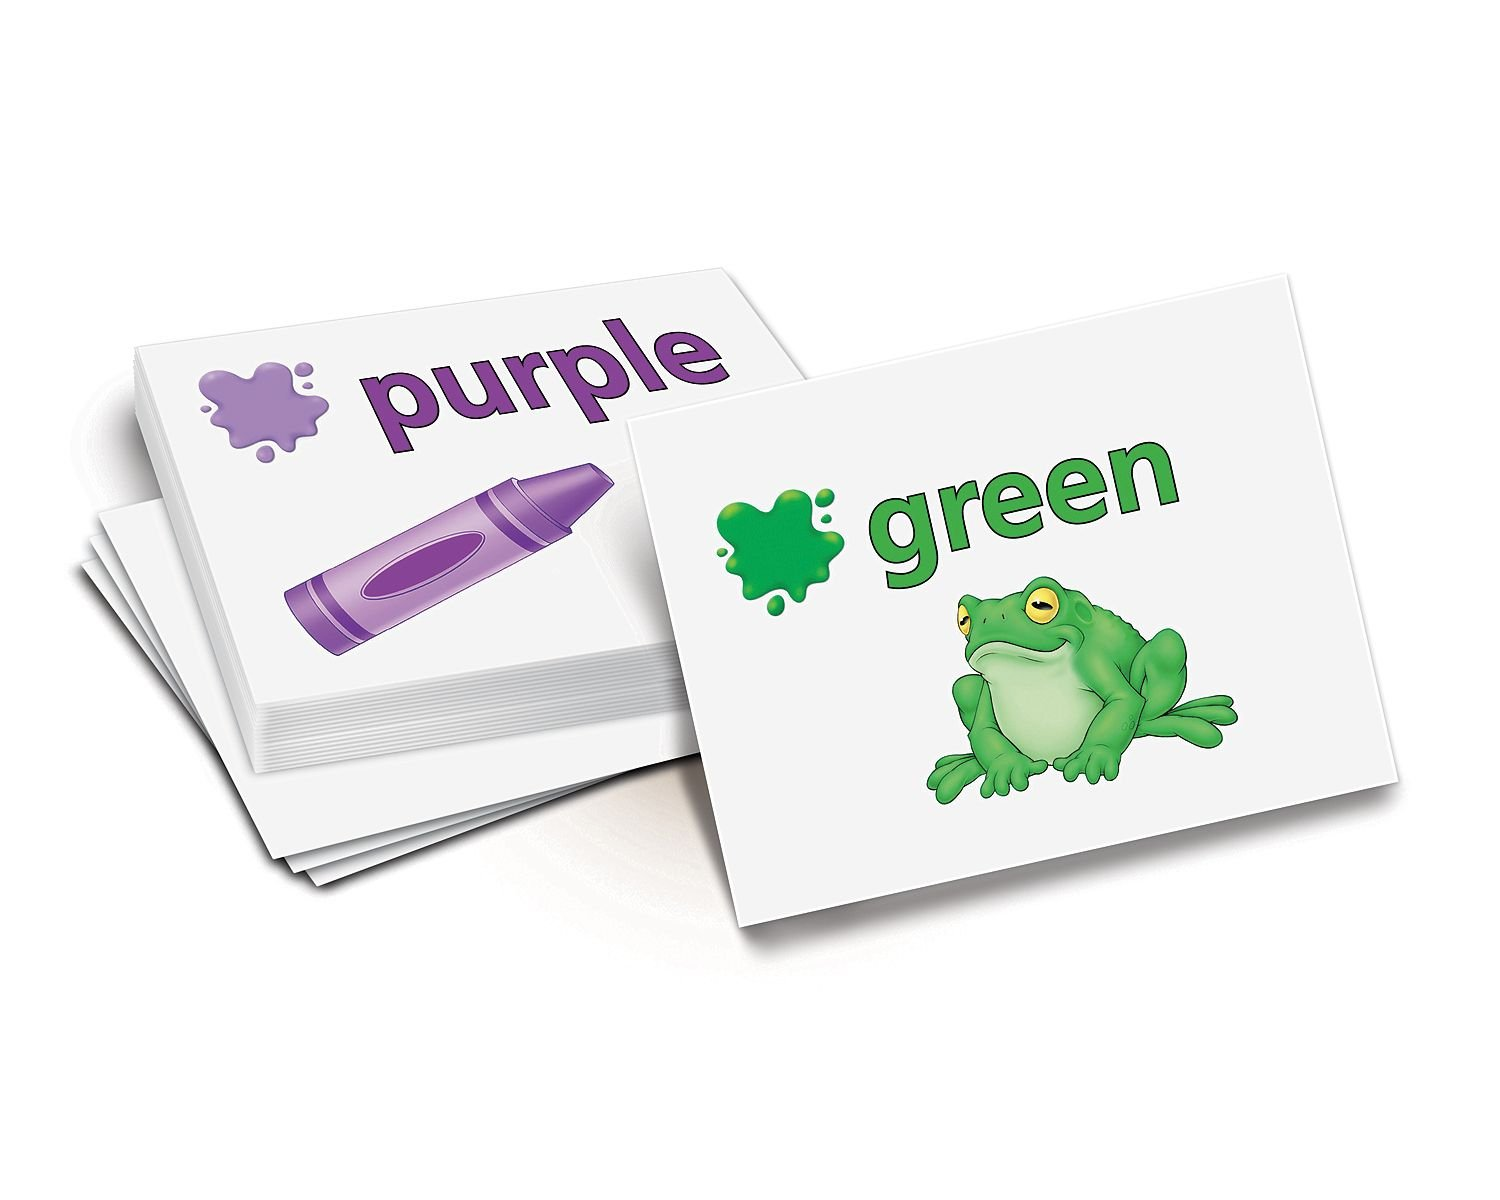 Avery Custom Print Flash Cards, 4.25 x 5.5 Inches, for Inkjet and Laser Printers, Pack 100 (04765) by Avery (Image #2)